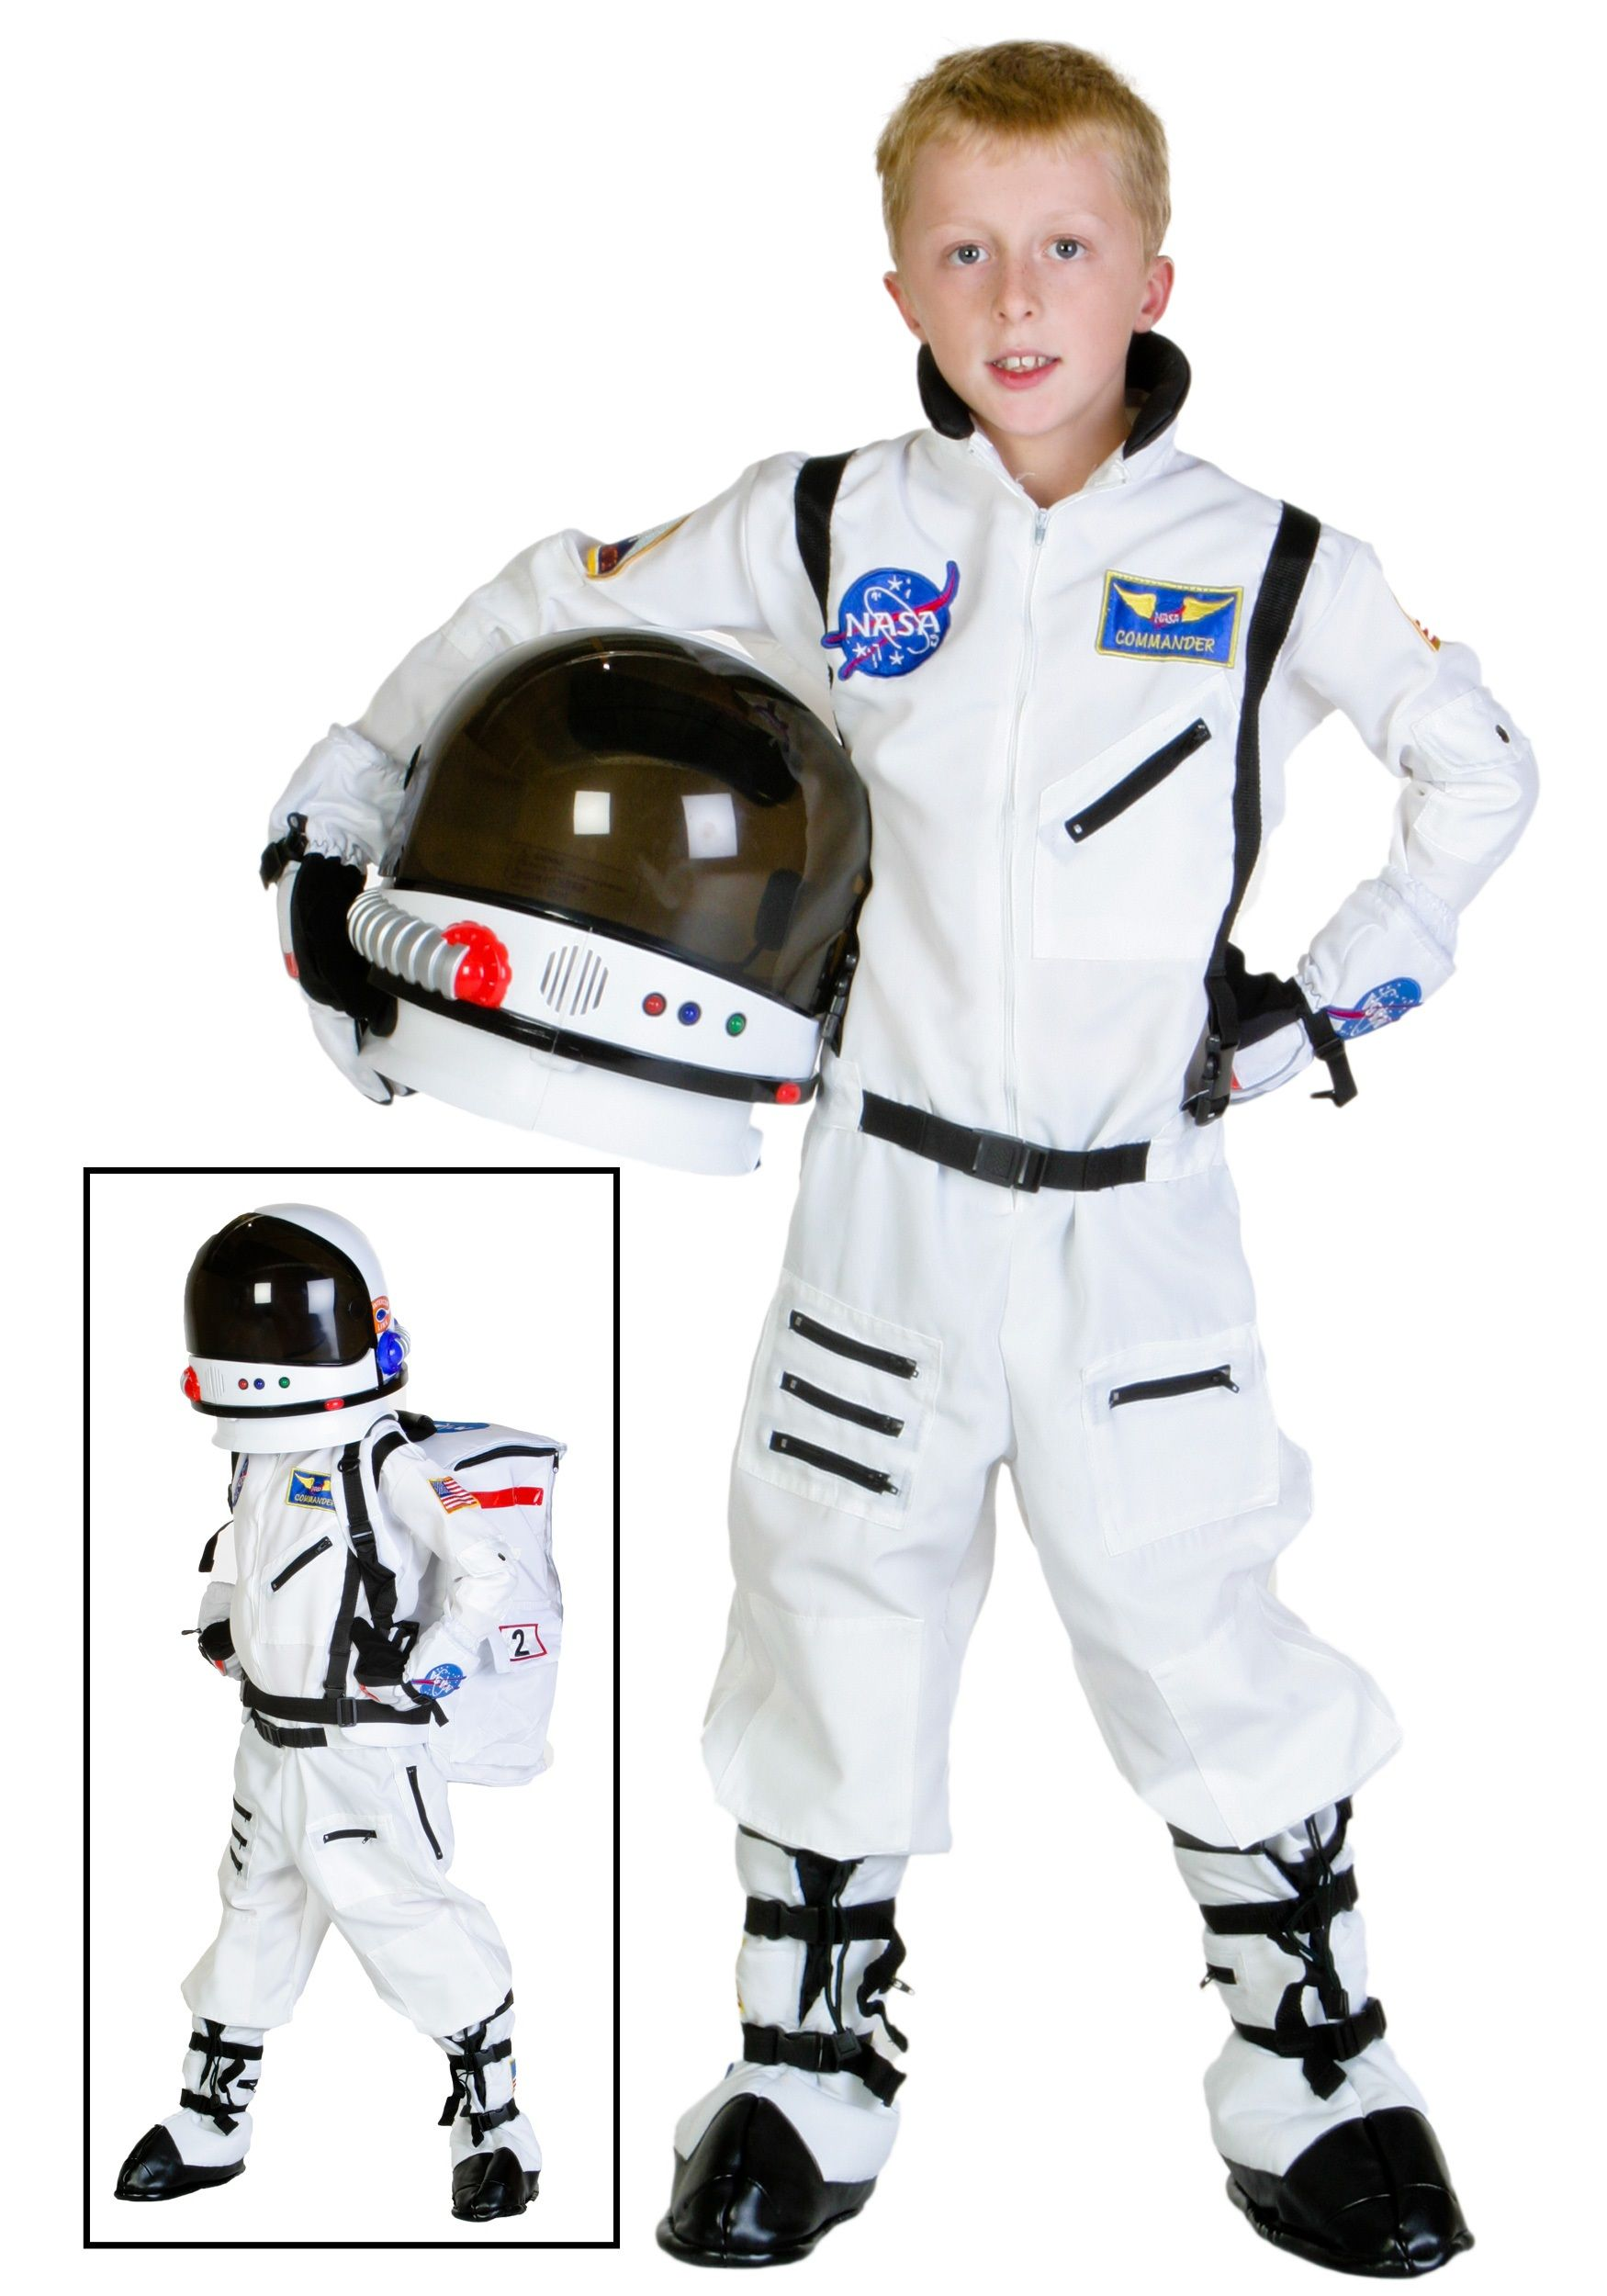 Before you try sending your kid to the moon, it might be a good ...